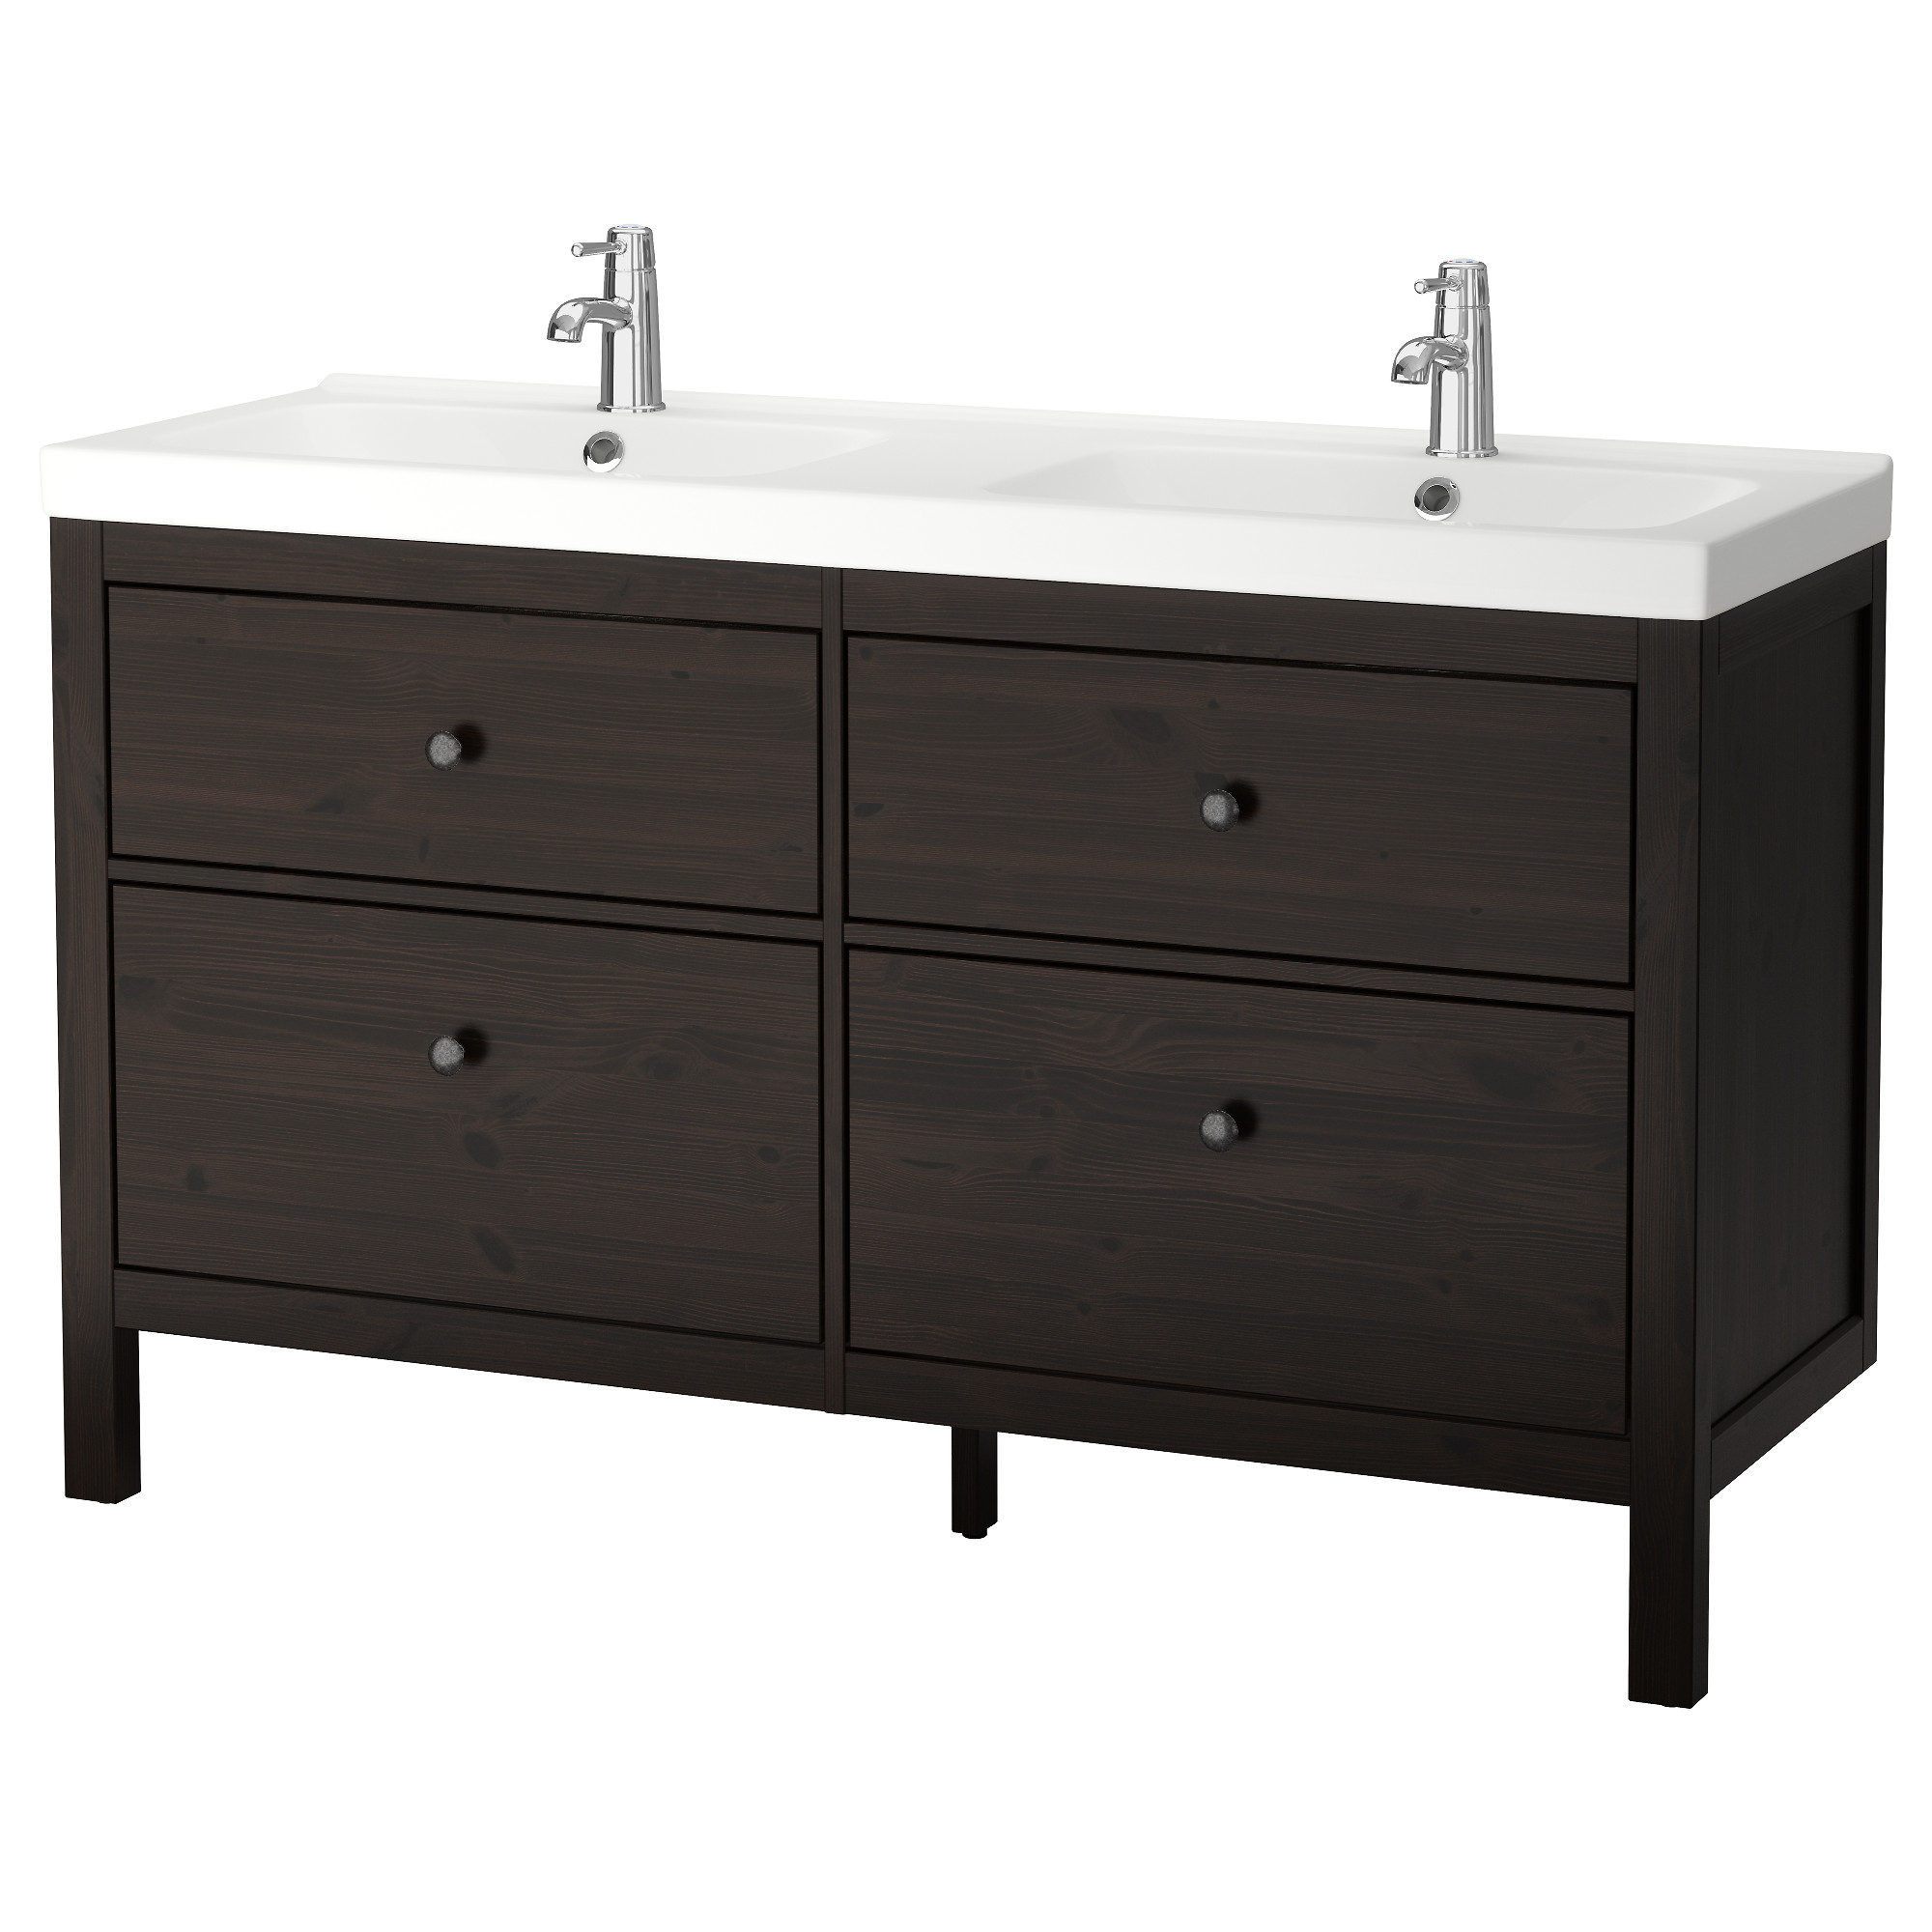 HEMNES / ODENSVIK Sink Cabinet With 4 Drawers, Black Brown Stain Width: 55